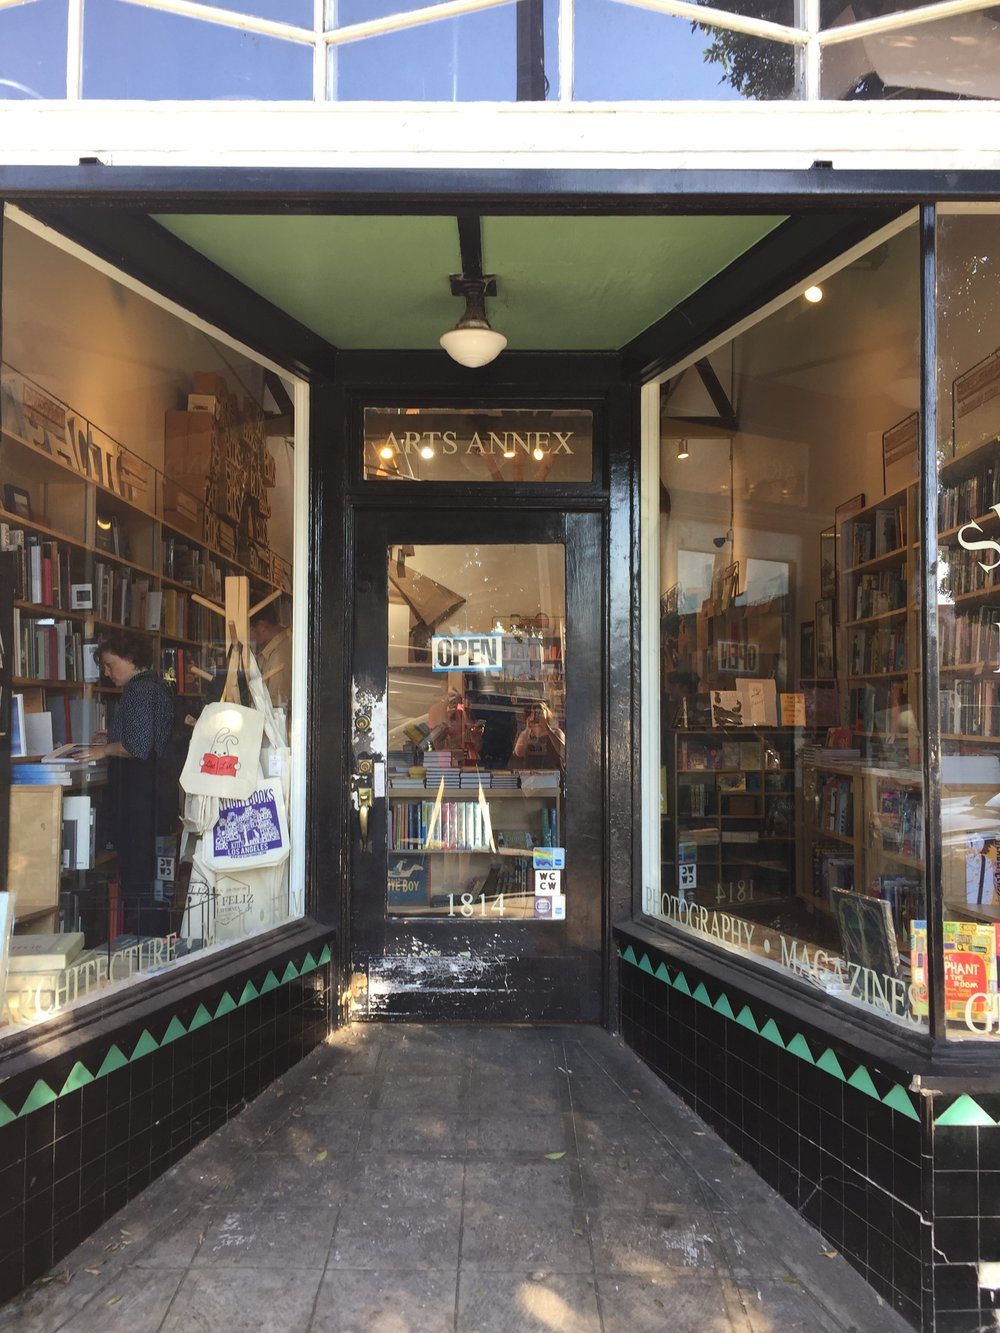 [image description: The shop window of the arts annex of Skylight Books. It's a narrow entrance with tall windows full of books. The entranceway has black tile with green triangles on the wall leading in.]